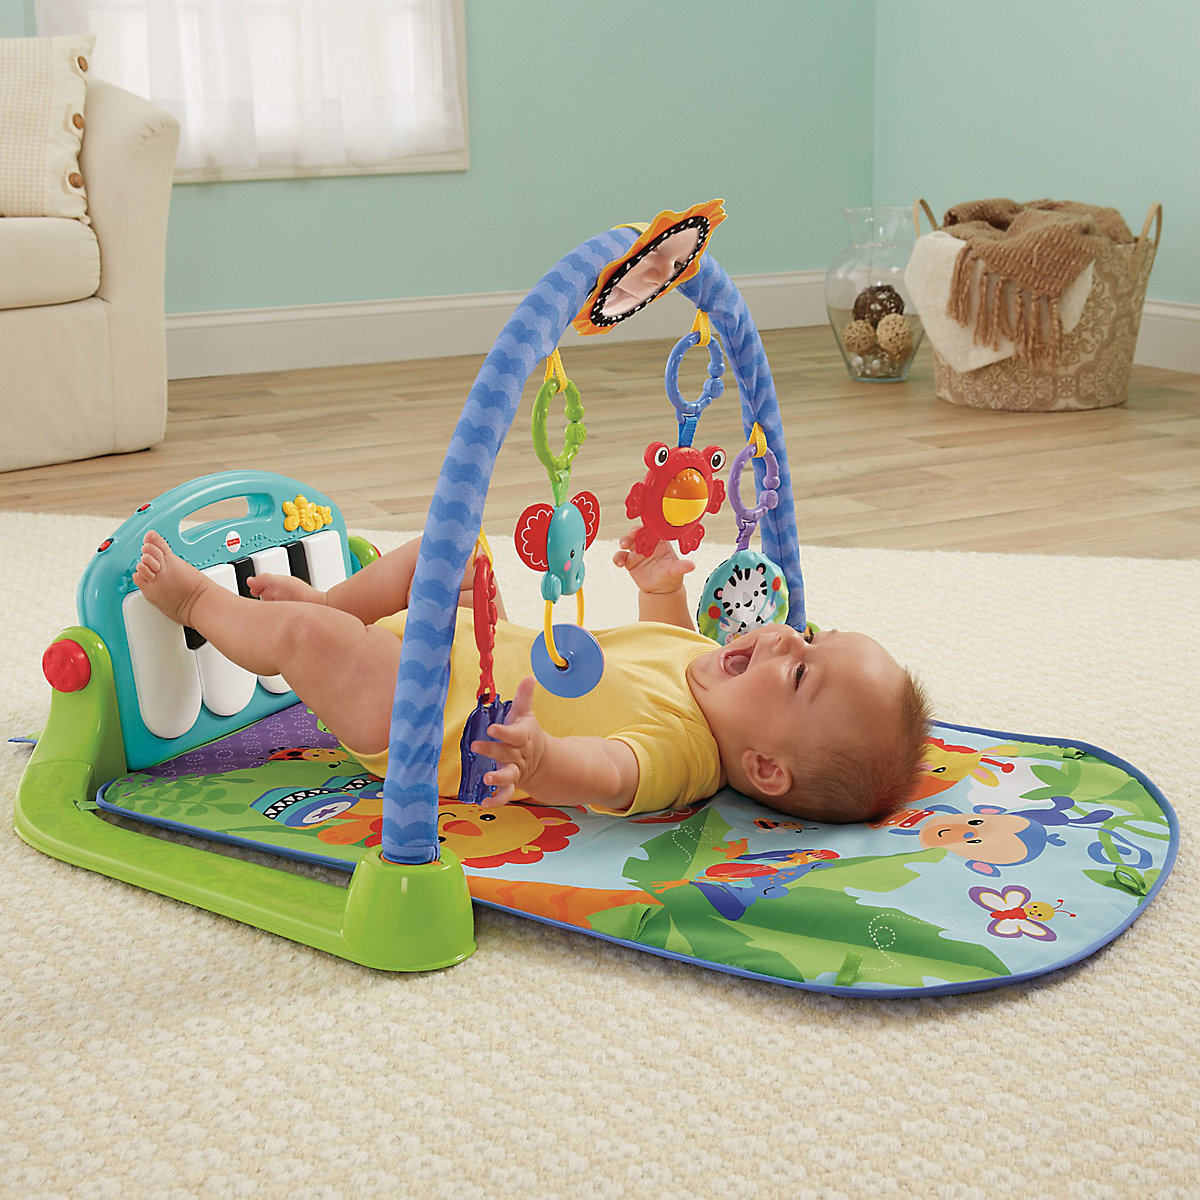 Play Mats FISHER-PRICE 3399157 Play Carpet Mat Developmental Children Educational Busy Toys for boys girls Baby Mat full silicone reborn baby dolls handmade lifelike play house educational doll kid high end christmas new year gifts collection